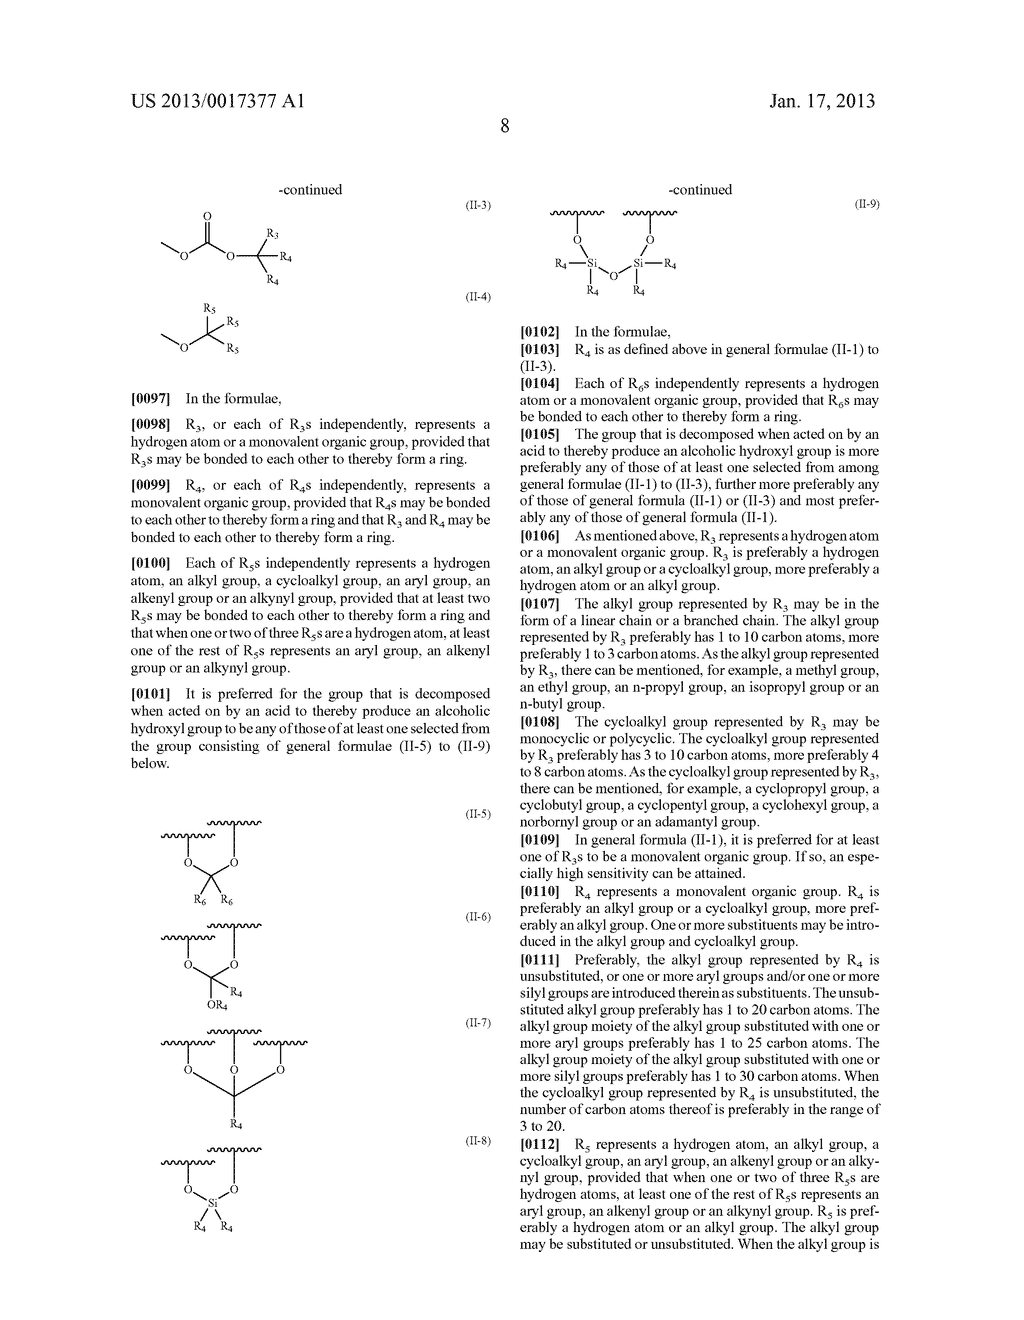 ACTINIC-RAY- OR RADIATION-SENSITIVE RESIN COMPOSITION AND METHOD OF     FORMING PATTERN USING THE SAMEAANM Kataoka; ShoheiAACI ShizuokaAACO JPAAGP Kataoka; Shohei Shizuoka JPAANM Iwato; KaoruAACI ShizuokaAACO JPAAGP Iwato; Kaoru Shizuoka JPAANM Kamimura; SouAACI ShizuokaAACO JPAAGP Kamimura; Sou Shizuoka JPAANM Tsuchihashi; ToruAACI ShizuokaAACO JPAAGP Tsuchihashi; Toru Shizuoka JPAANM Enomoto; YuichiroAACI ShizuokaAACO JPAAGP Enomoto; Yuichiro Shizuoka JPAANM Fujii; KanaAACI ShizuokaAACO JPAAGP Fujii; Kana Shizuoka JPAANM Mizutani; KazuyoshiAACI ShizuokaAACO JPAAGP Mizutani; Kazuyoshi Shizuoka JPAANM Tarutani; ShinjiAACI ShizuokaAACO JPAAGP Tarutani; Shinji Shizuoka JPAANM Kato; KeitaAACI ShizuokaAACO JPAAGP Kato; Keita Shizuoka JP - diagram, schematic, and image 09